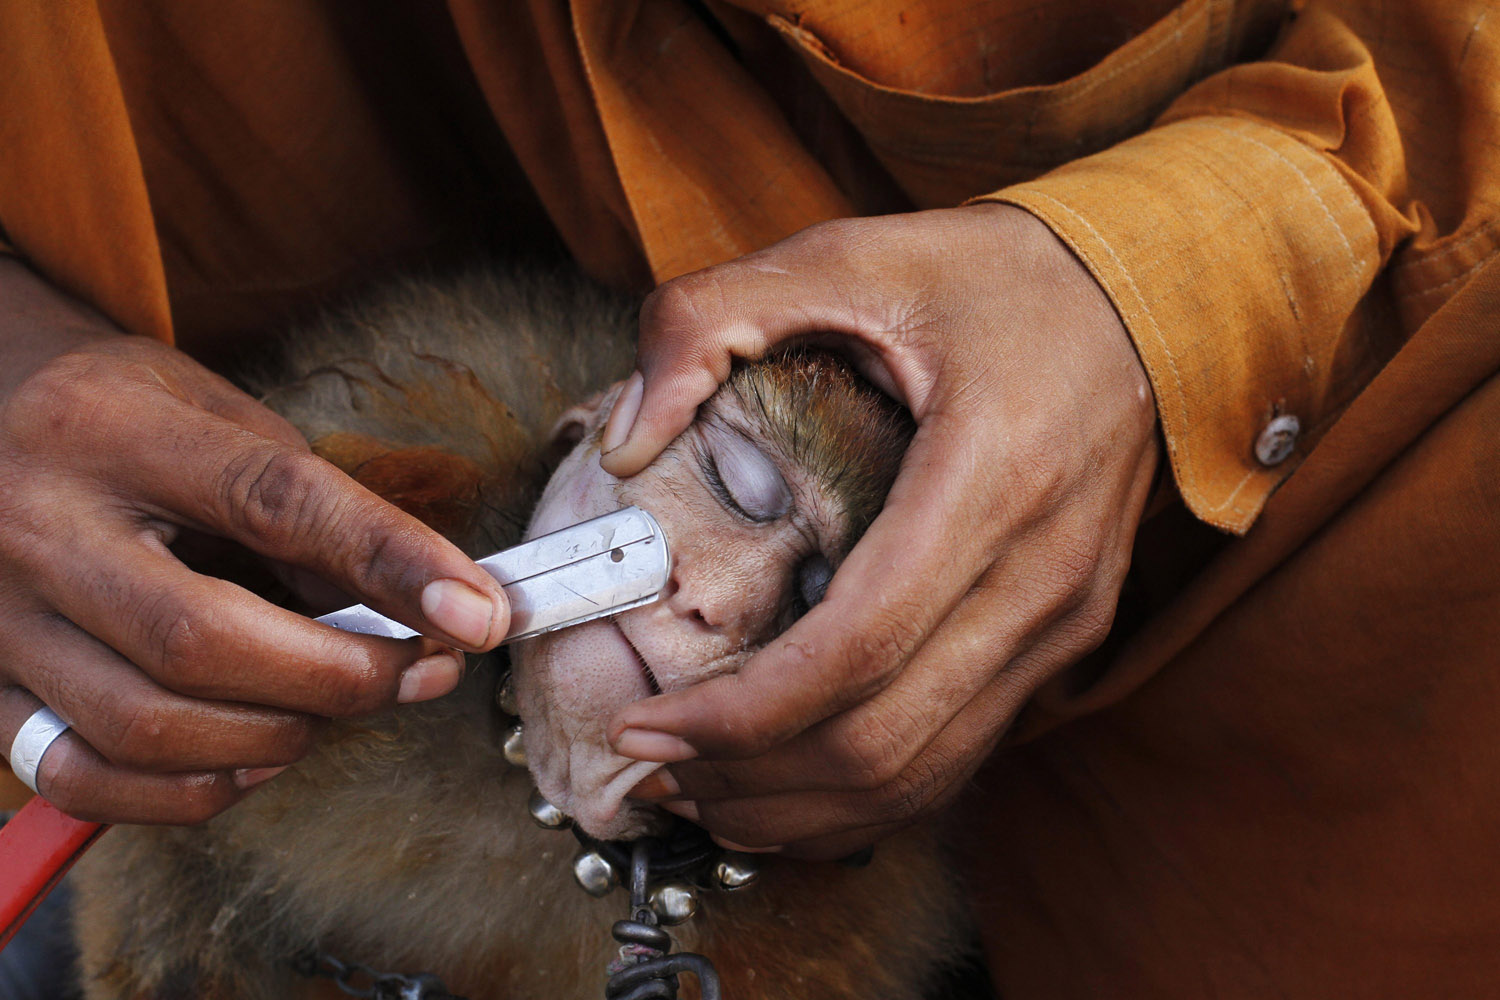 Oct. 7, 2013. A man shaves his monkey with a razor before it performs tricks for money in Lahore, Pakistan.